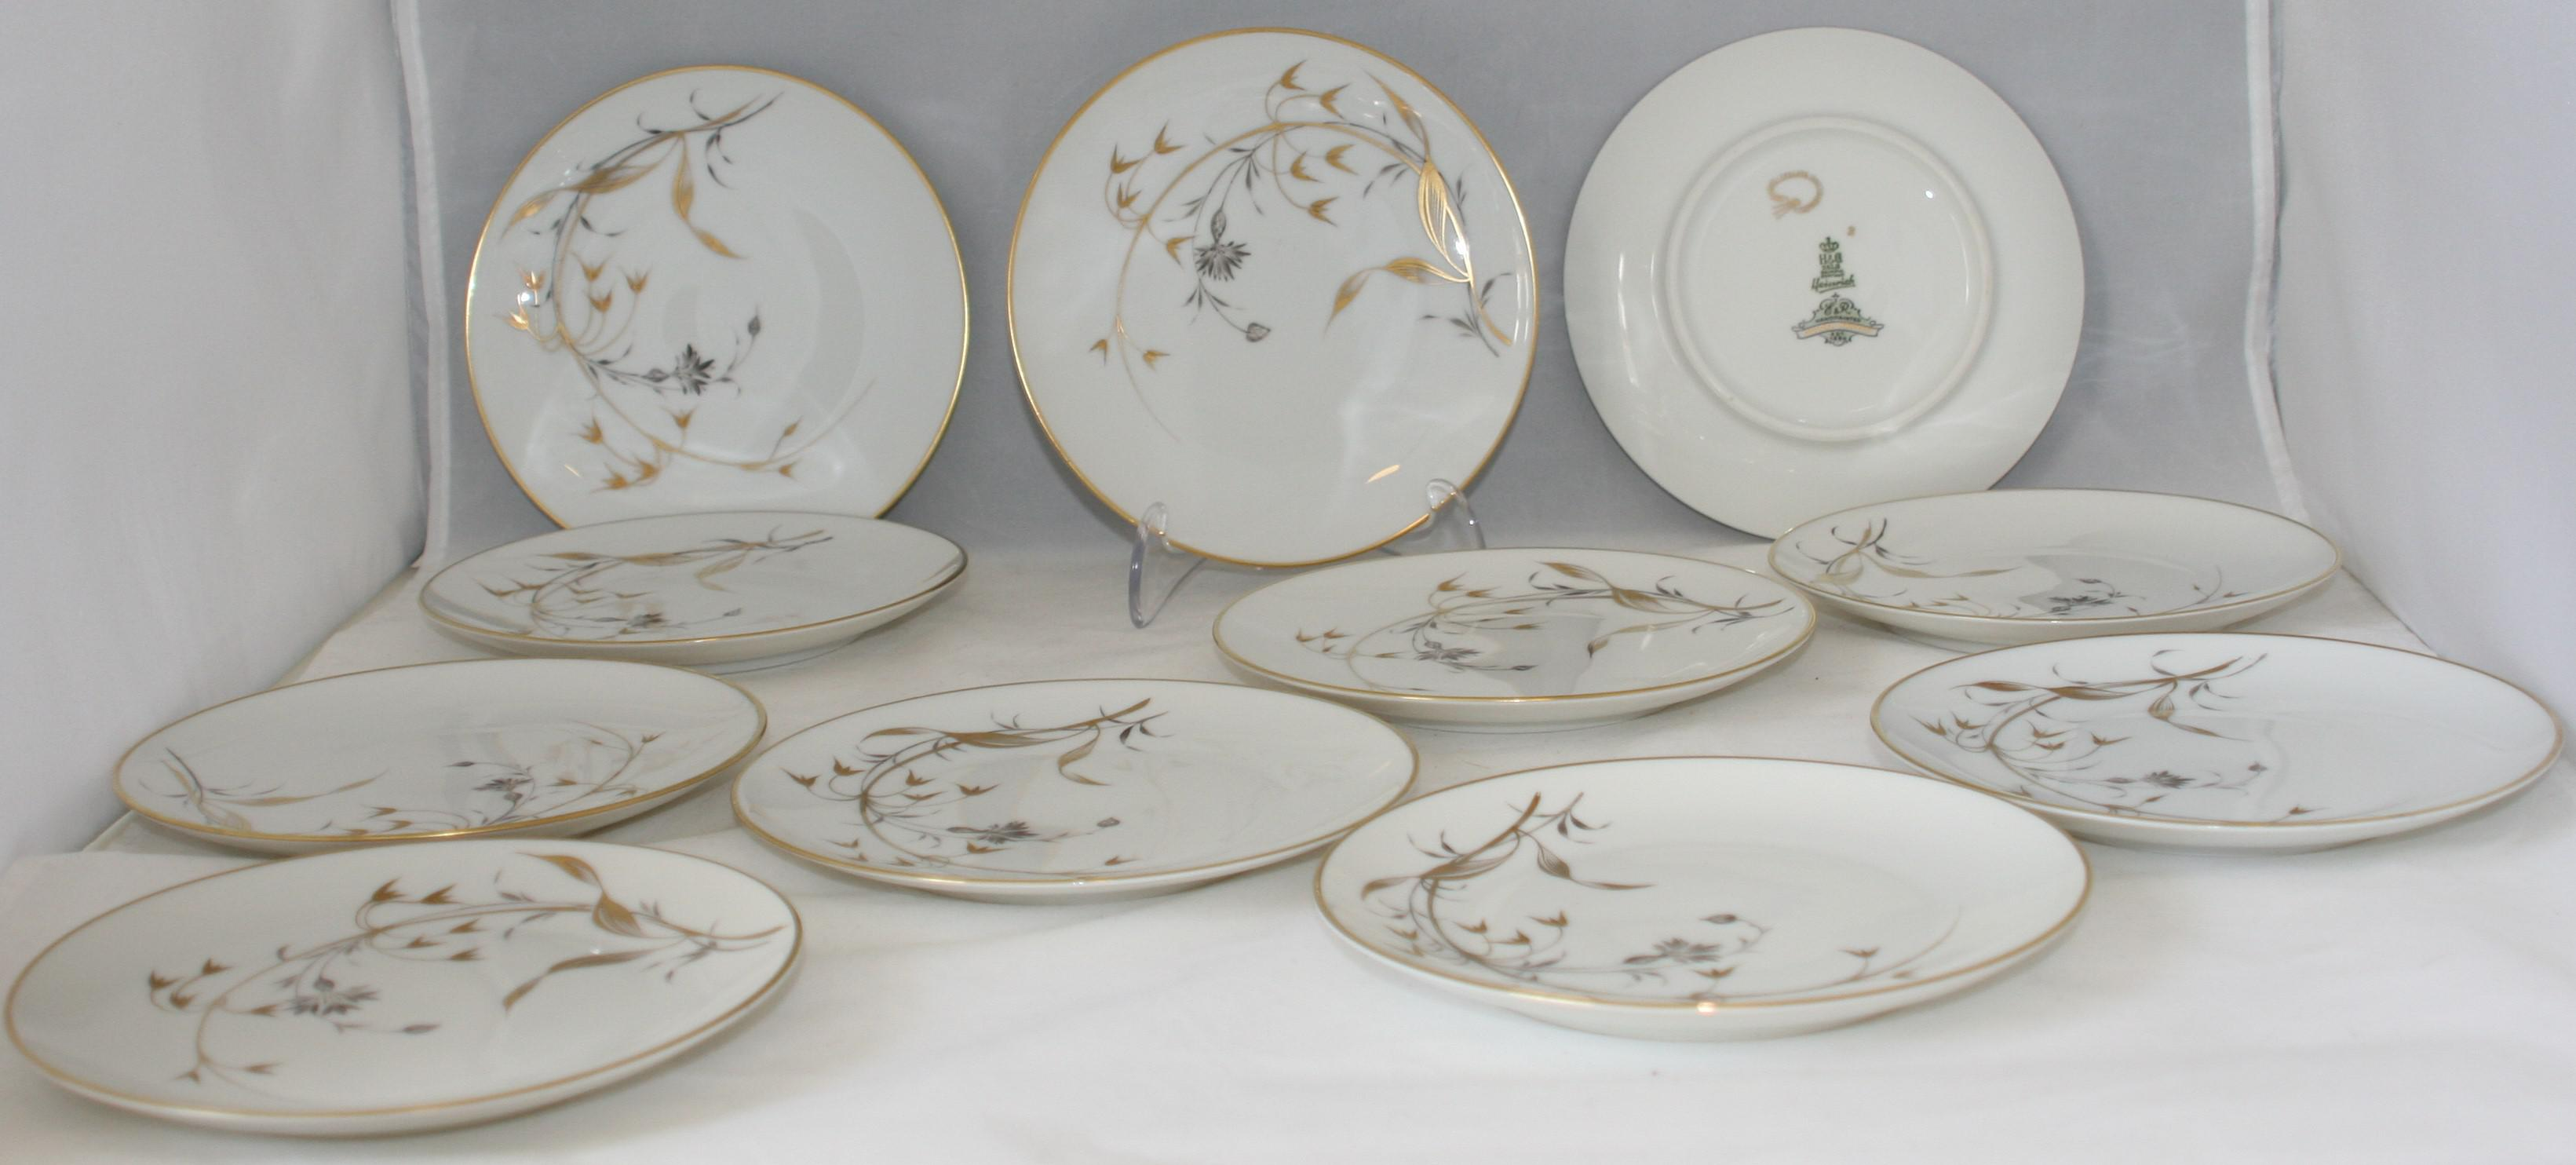 Vintage German Porcelain Heinrich u0026 Co. Golden Harvest Dessert Dishes - Set of 11 -  sc 1 st  Chairish & Vintage German Porcelain Heinrich u0026 Co. Golden Harvest Dessert ...